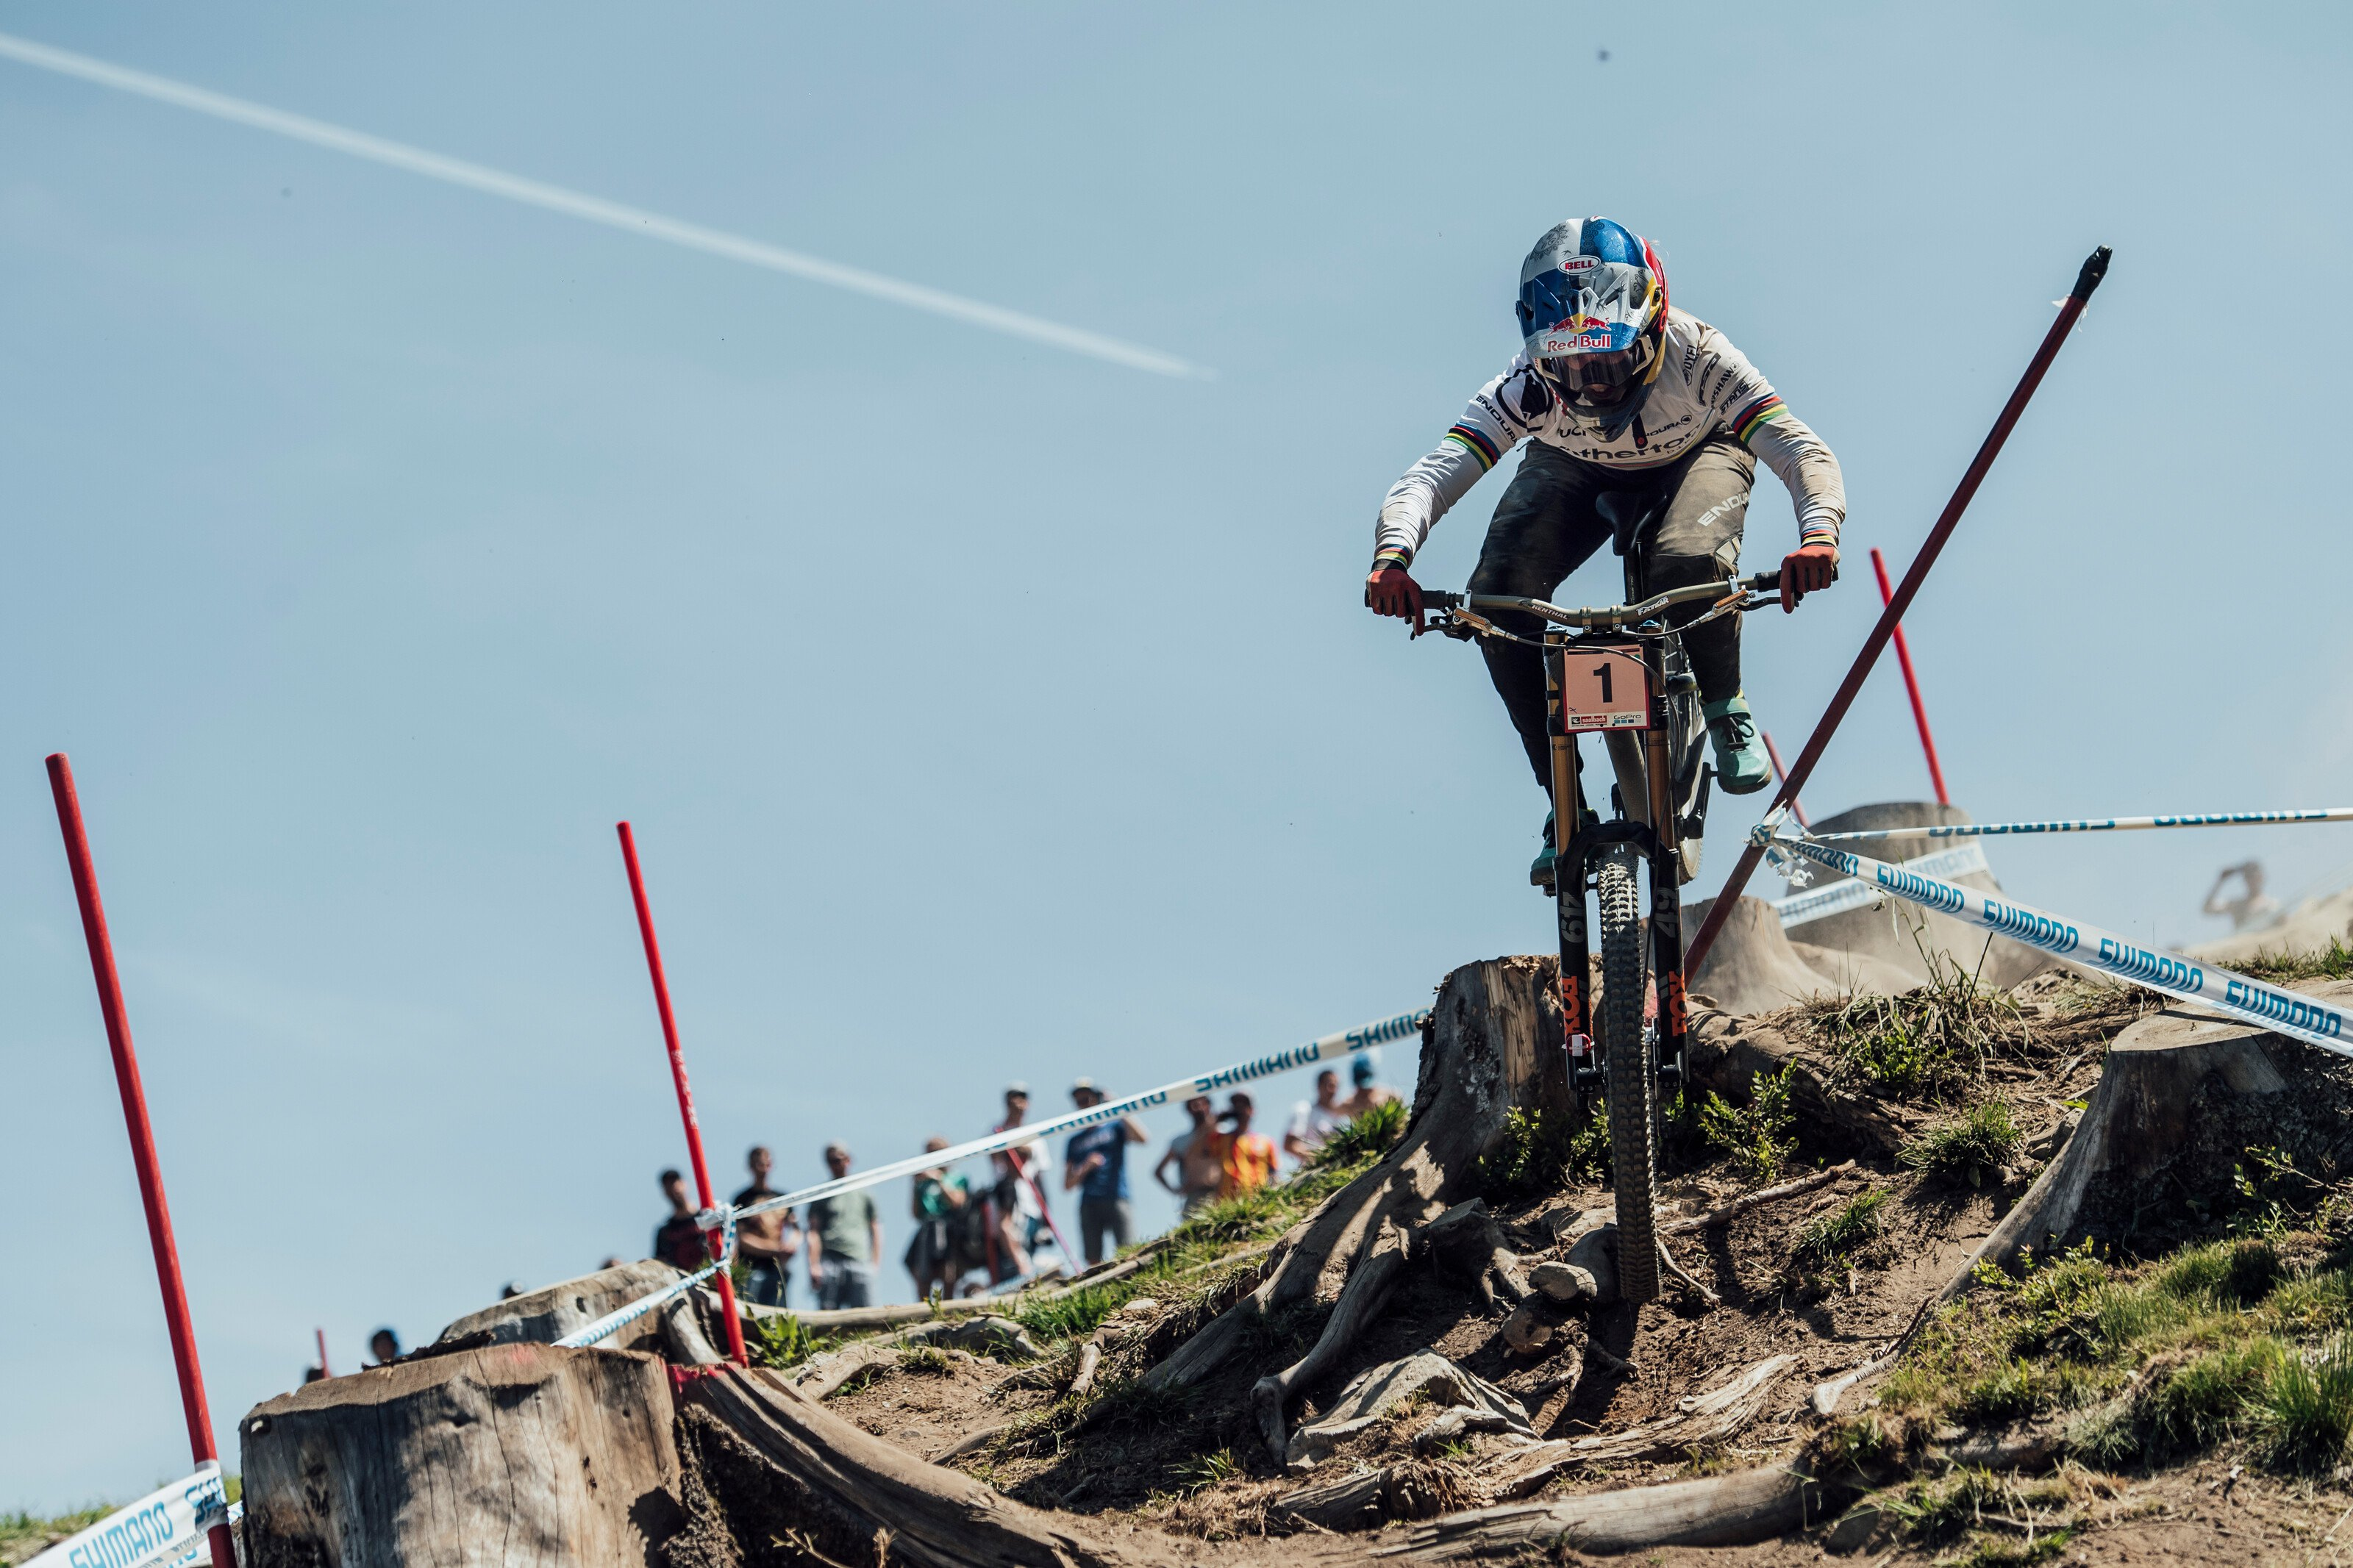 Rachel Atherton and the course marker in question